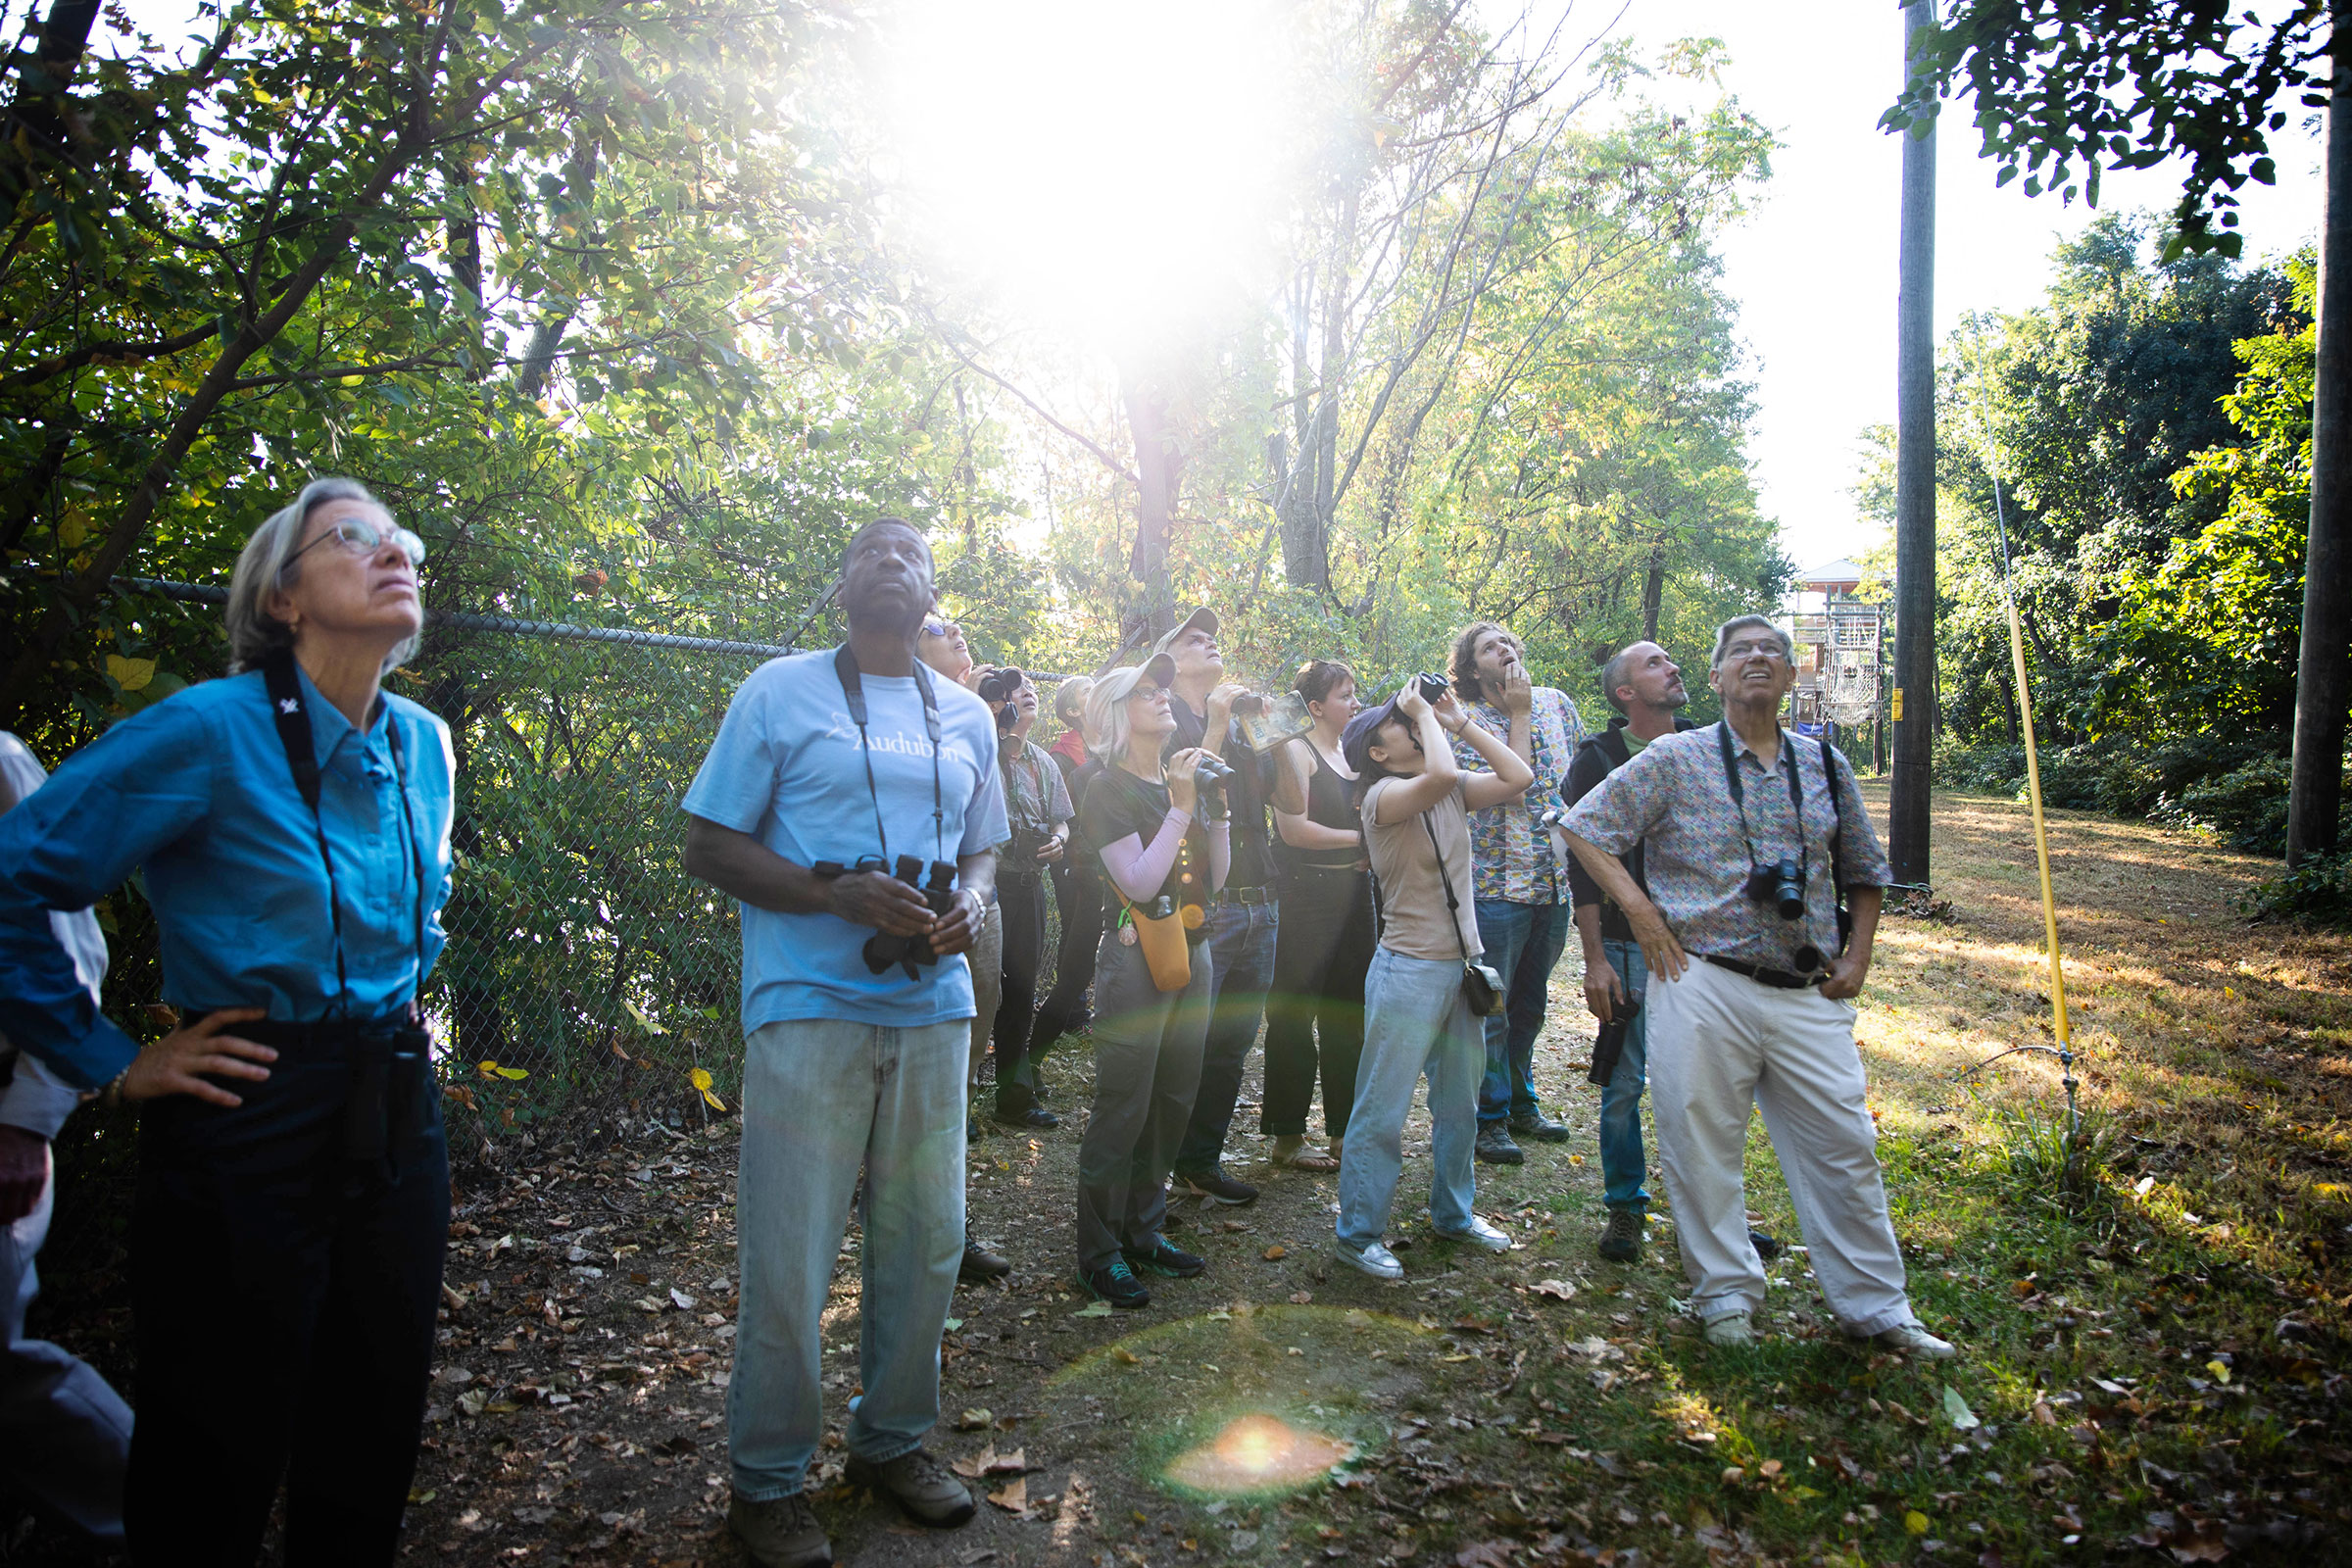 Keith Russell, Urban Conservation Education Manager, leads a morning bird walk during the bird-off event in Philadelphia. Dominic Arenas/Audubon